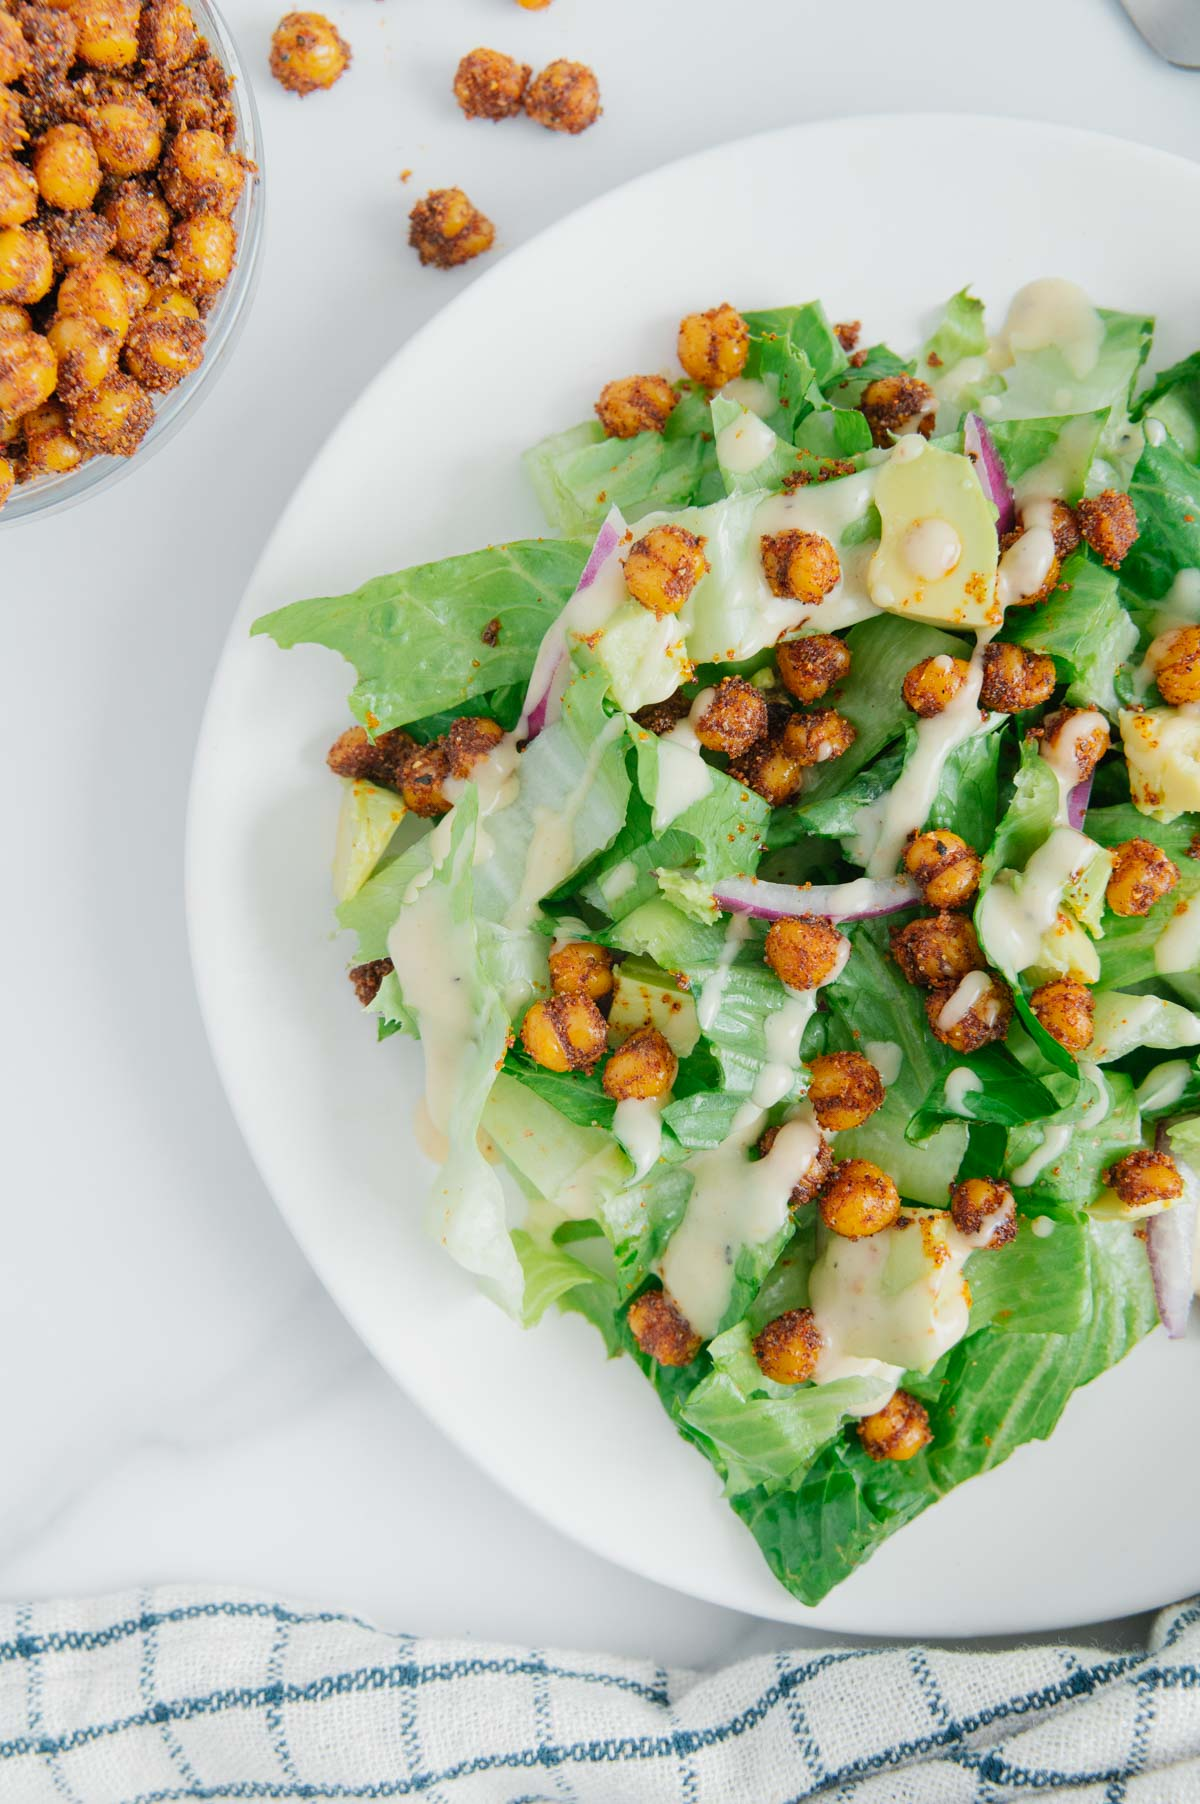 How to Use Crunchy Chickpeas